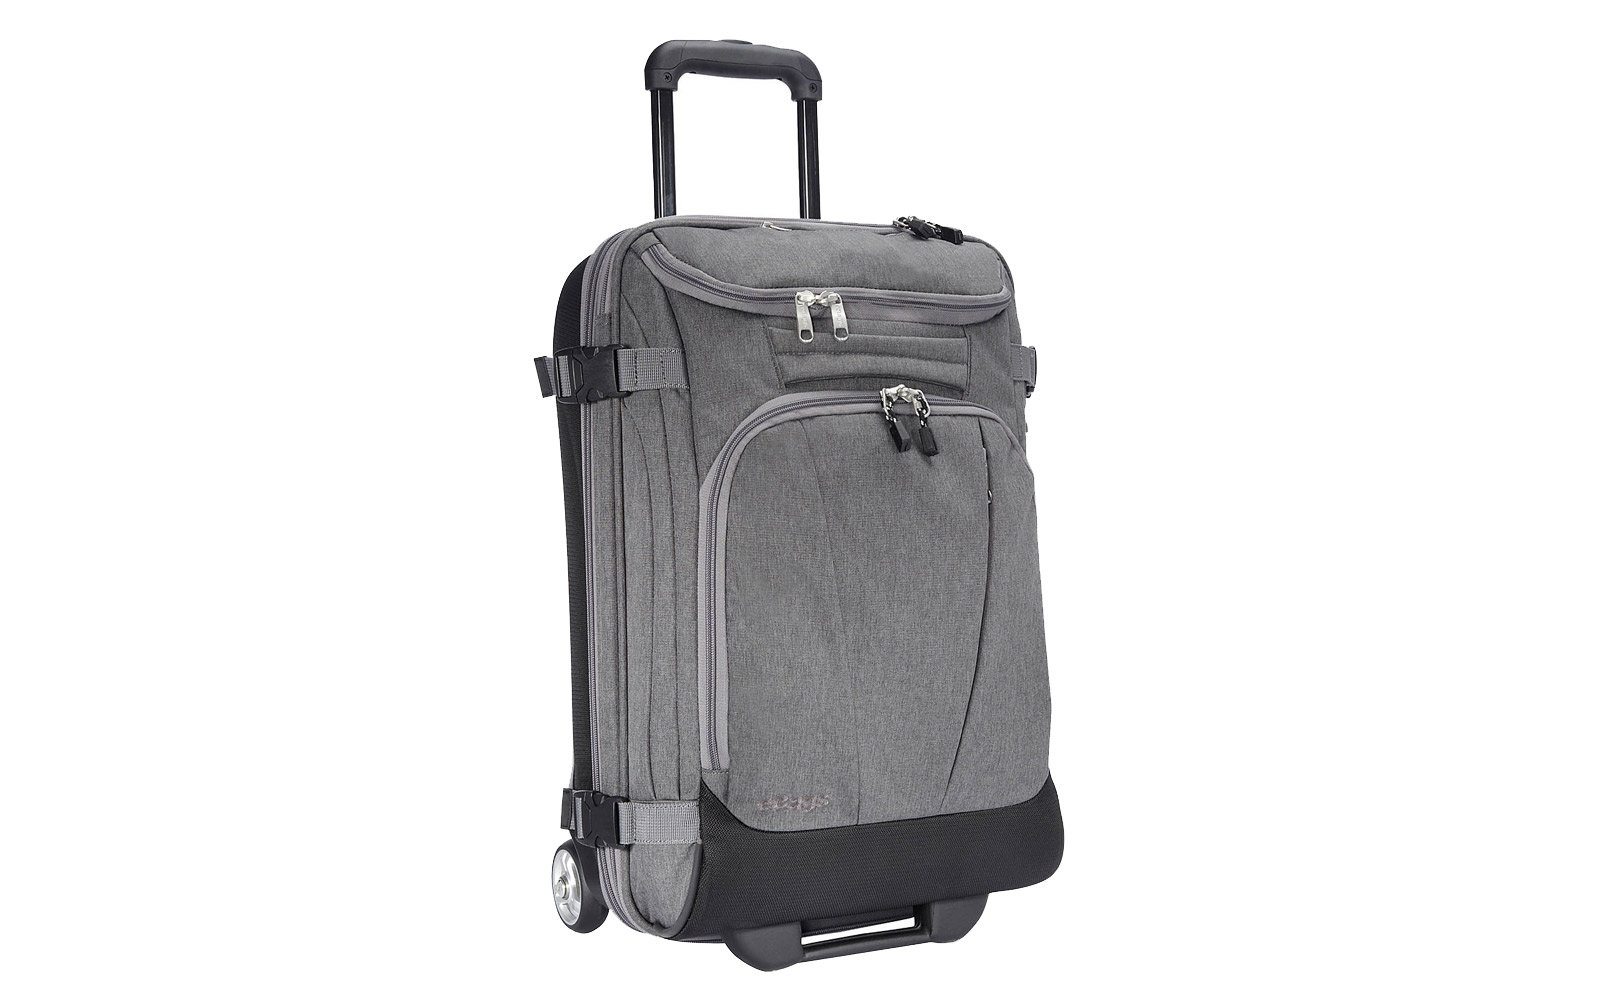 b8063b4faa The Best Luggage Deals on Black Friday and Cyber Monday 2018 ...